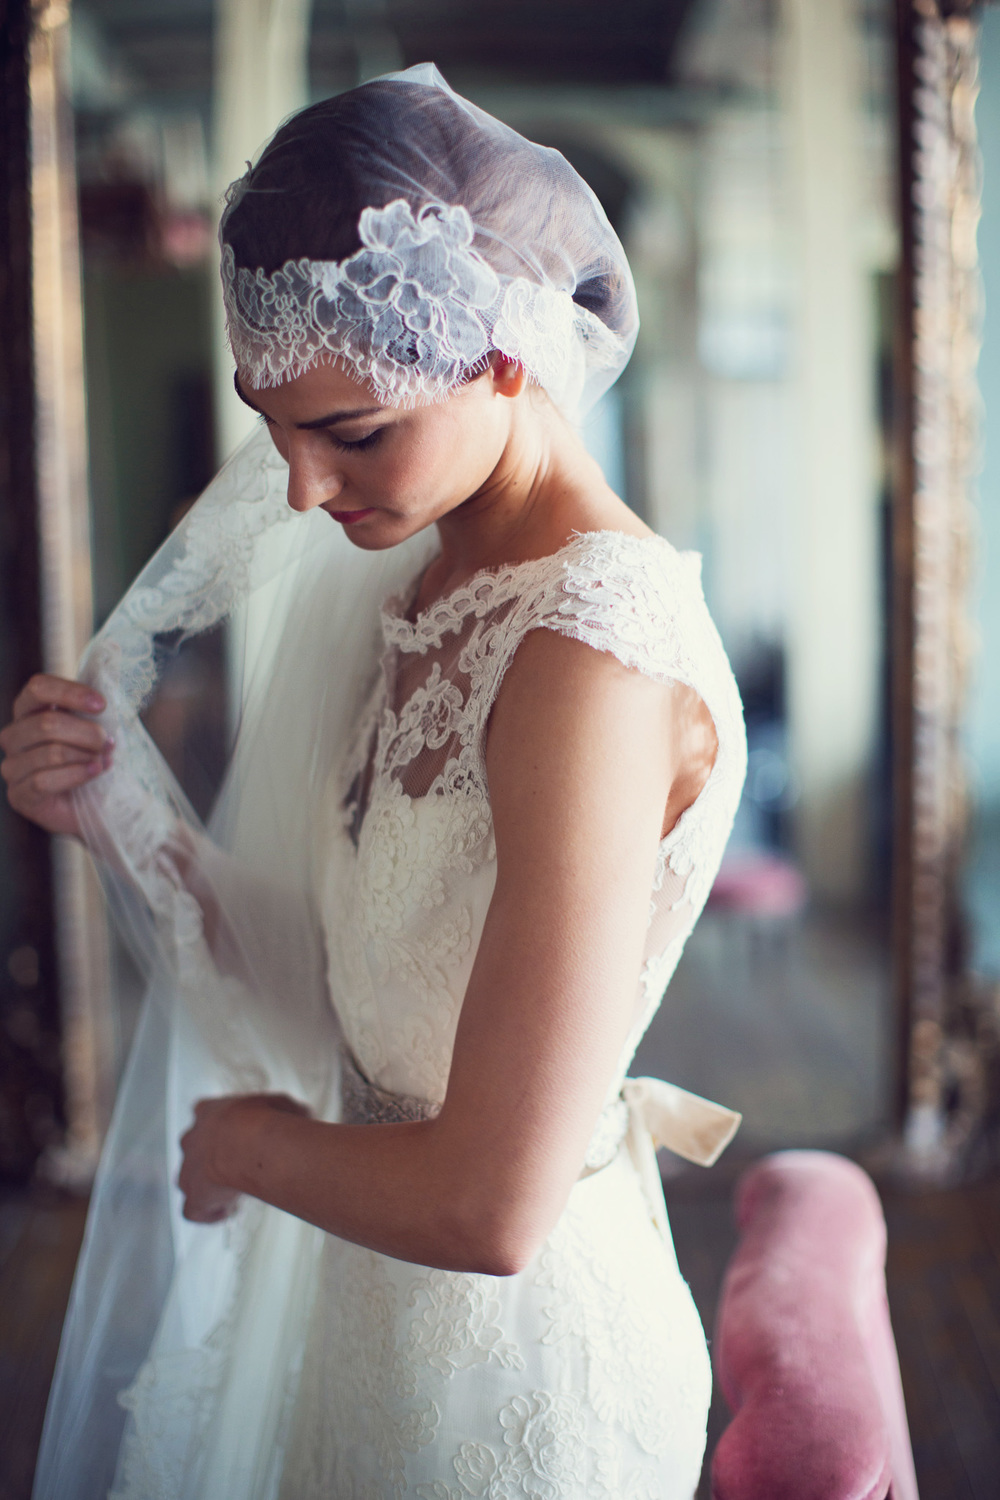 boho-bride-headpiece-lace-dress-veil